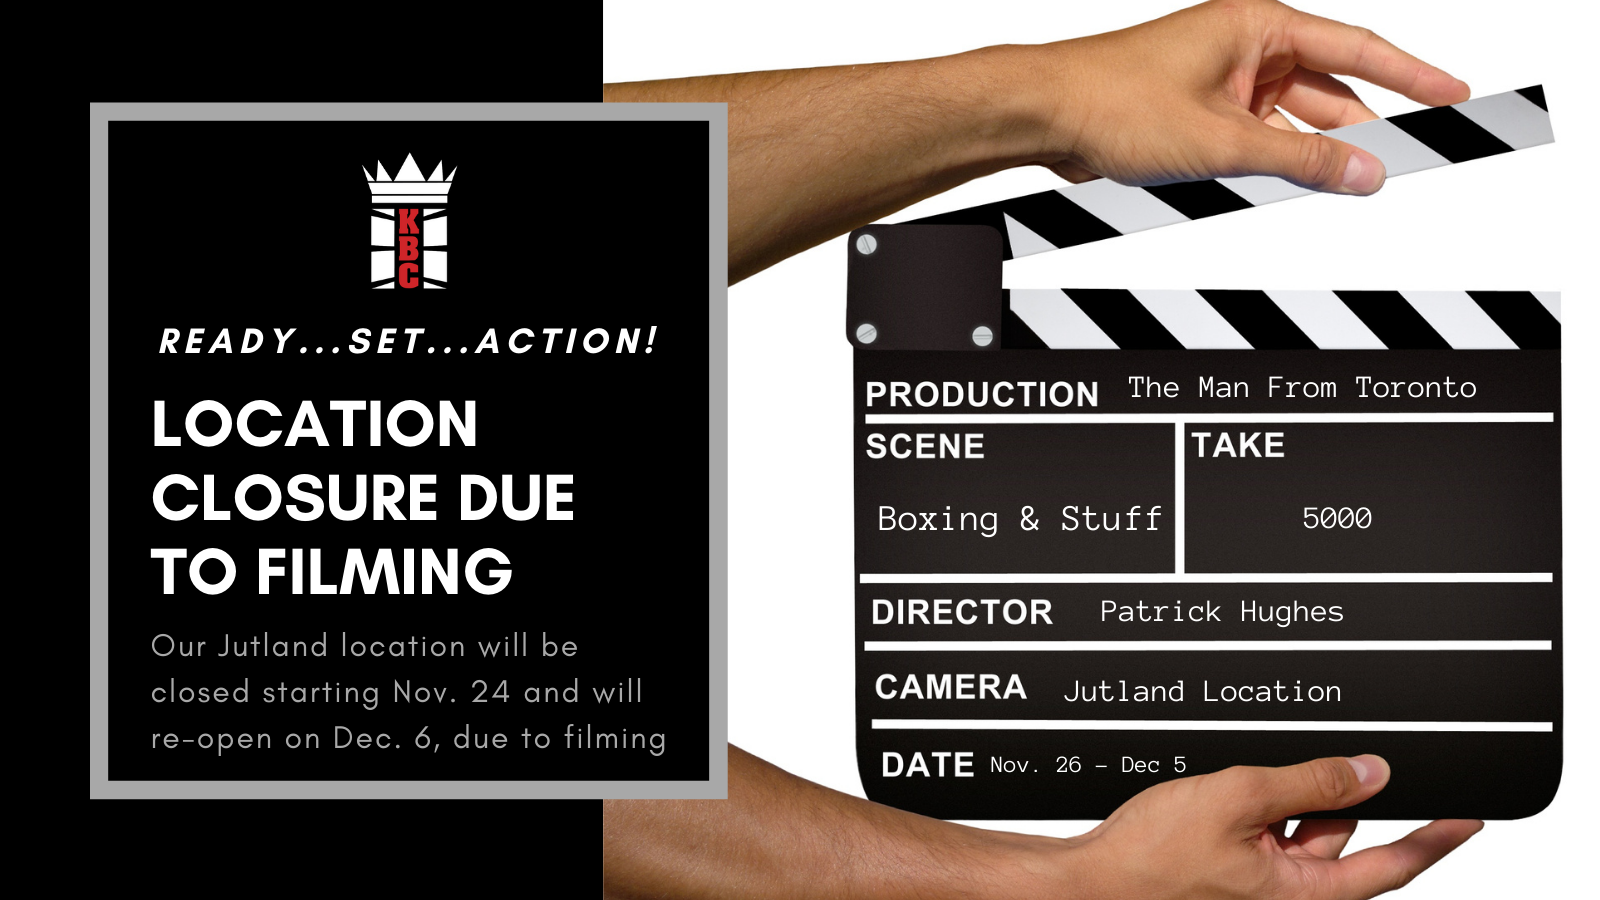 LOCATION CLOSURE: Temporary Jutland Closure Due To The Filming Of 'The Man From Toronto'